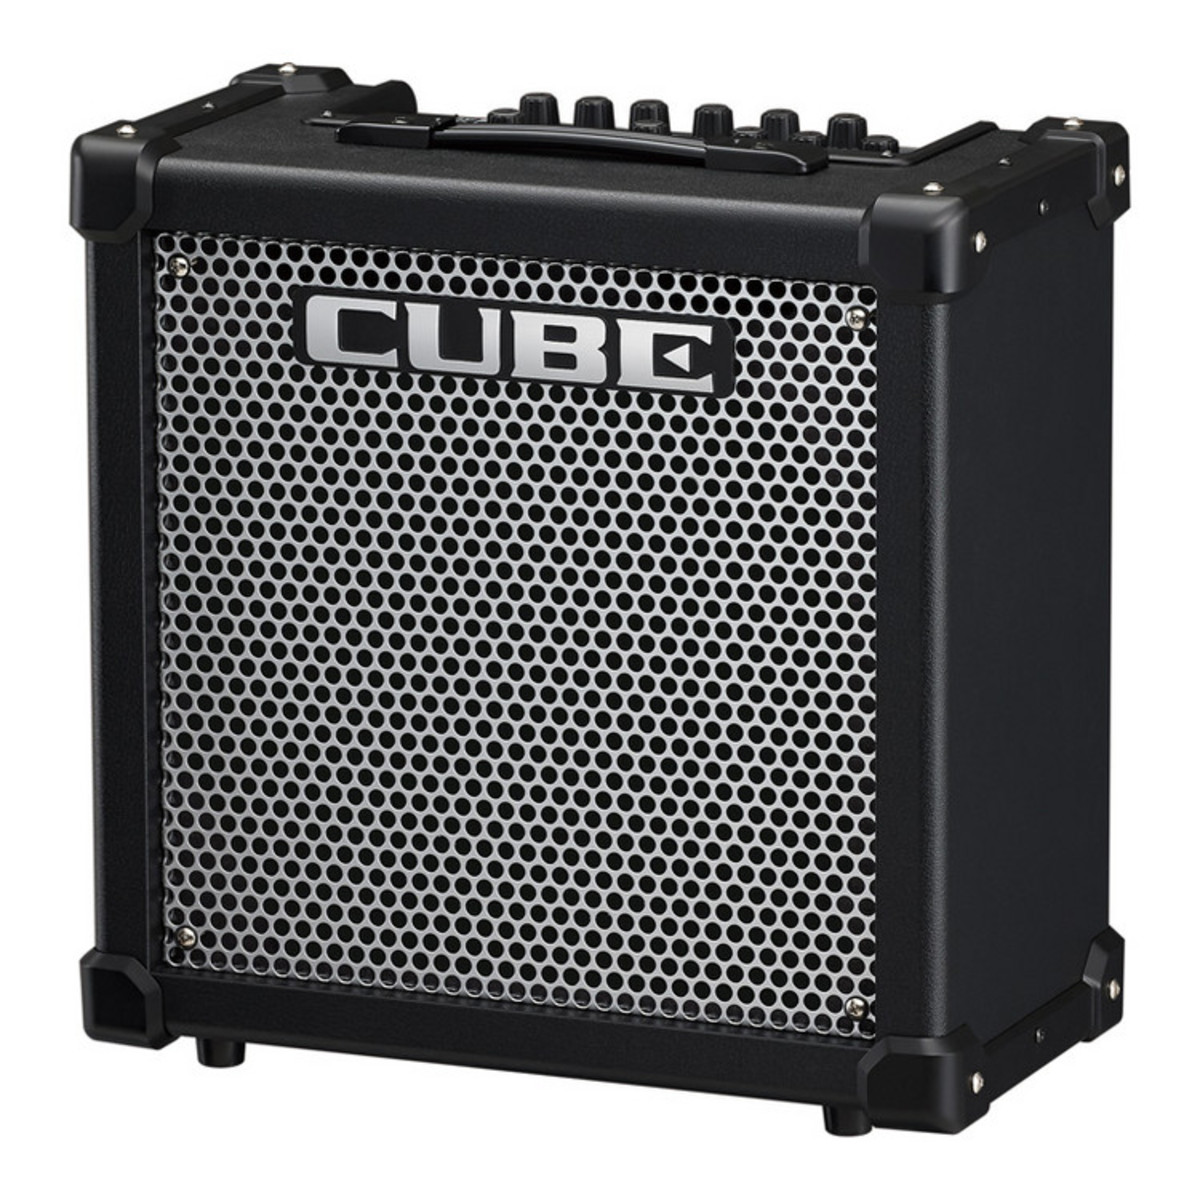 disc roland cube 40gx guitar amplifier at gear4music. Black Bedroom Furniture Sets. Home Design Ideas